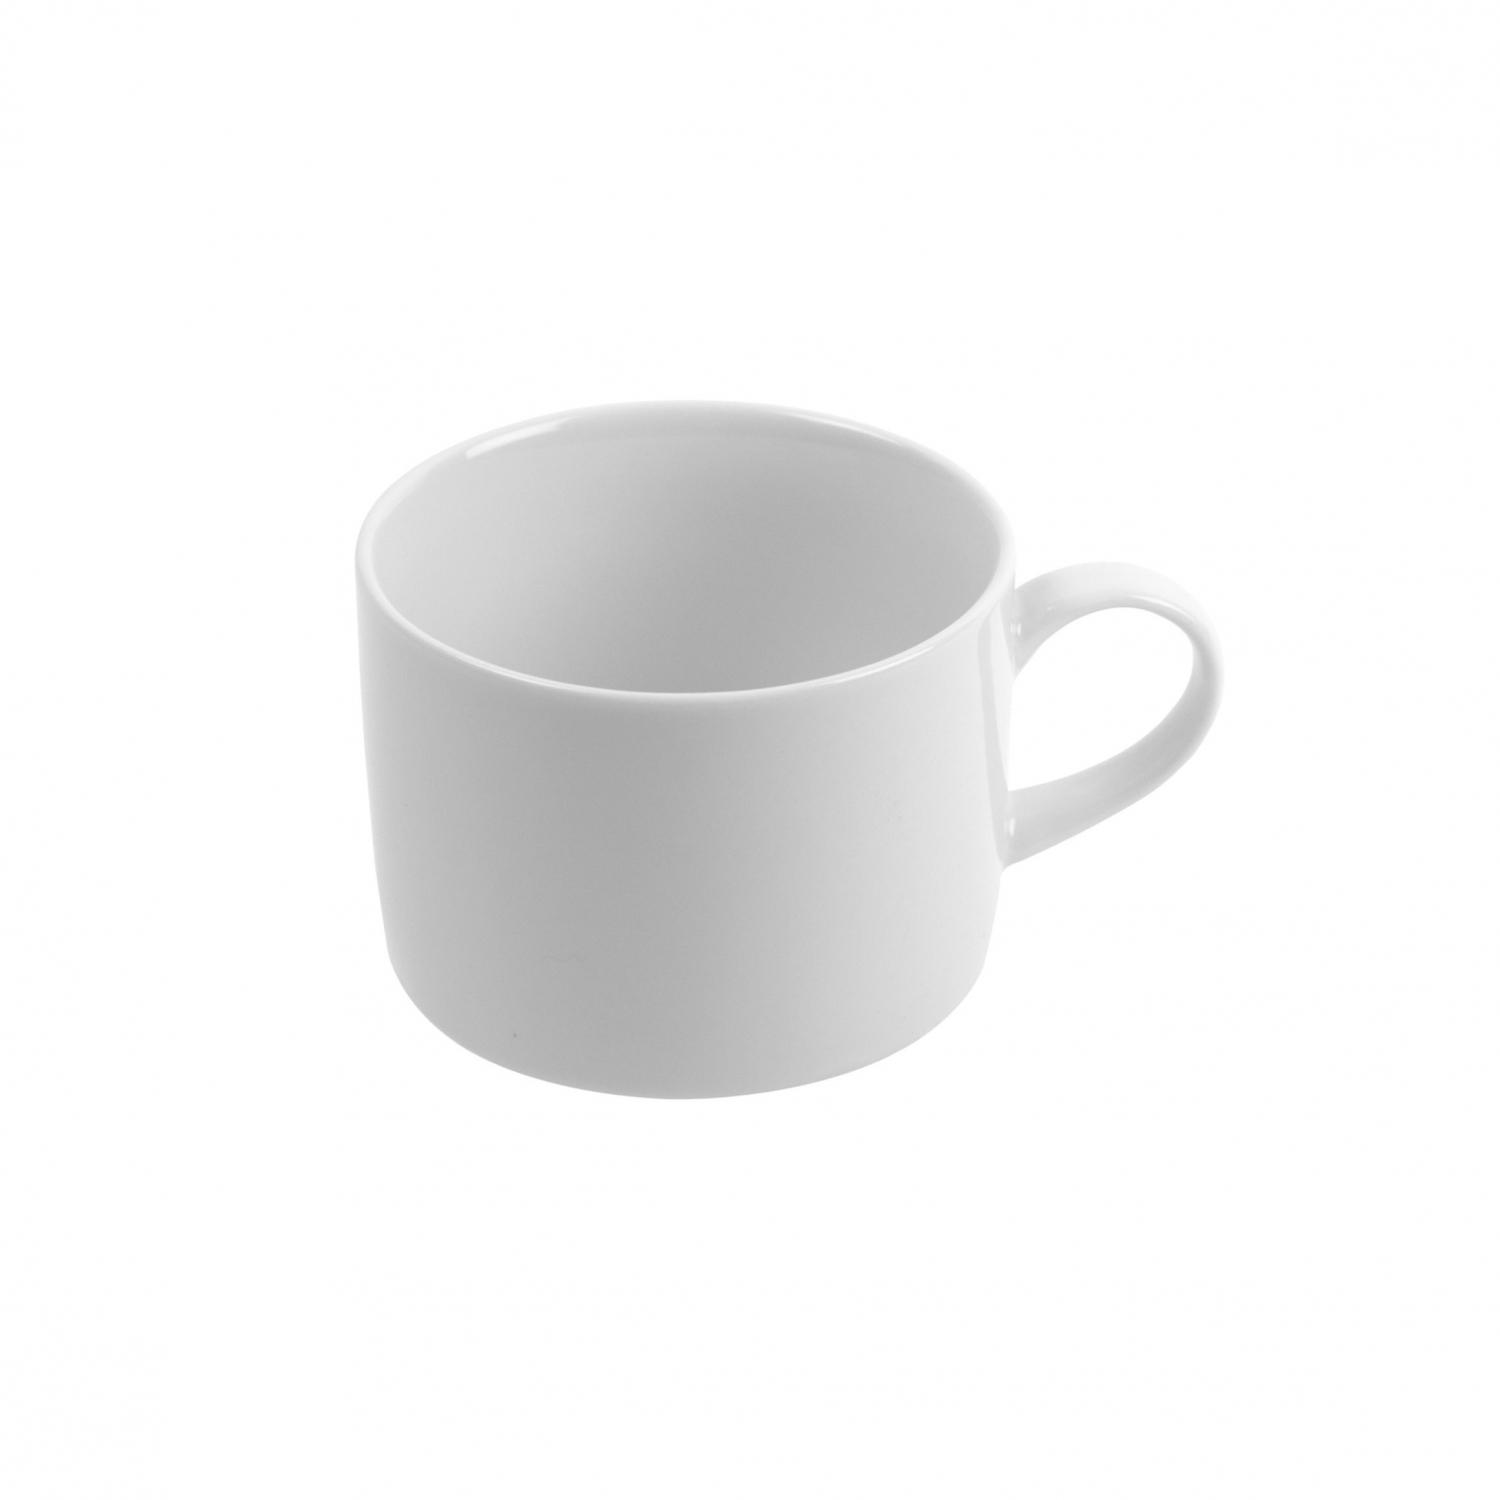 10 Strawberry Street RW0009-C Royal White Can Cup 8 oz.